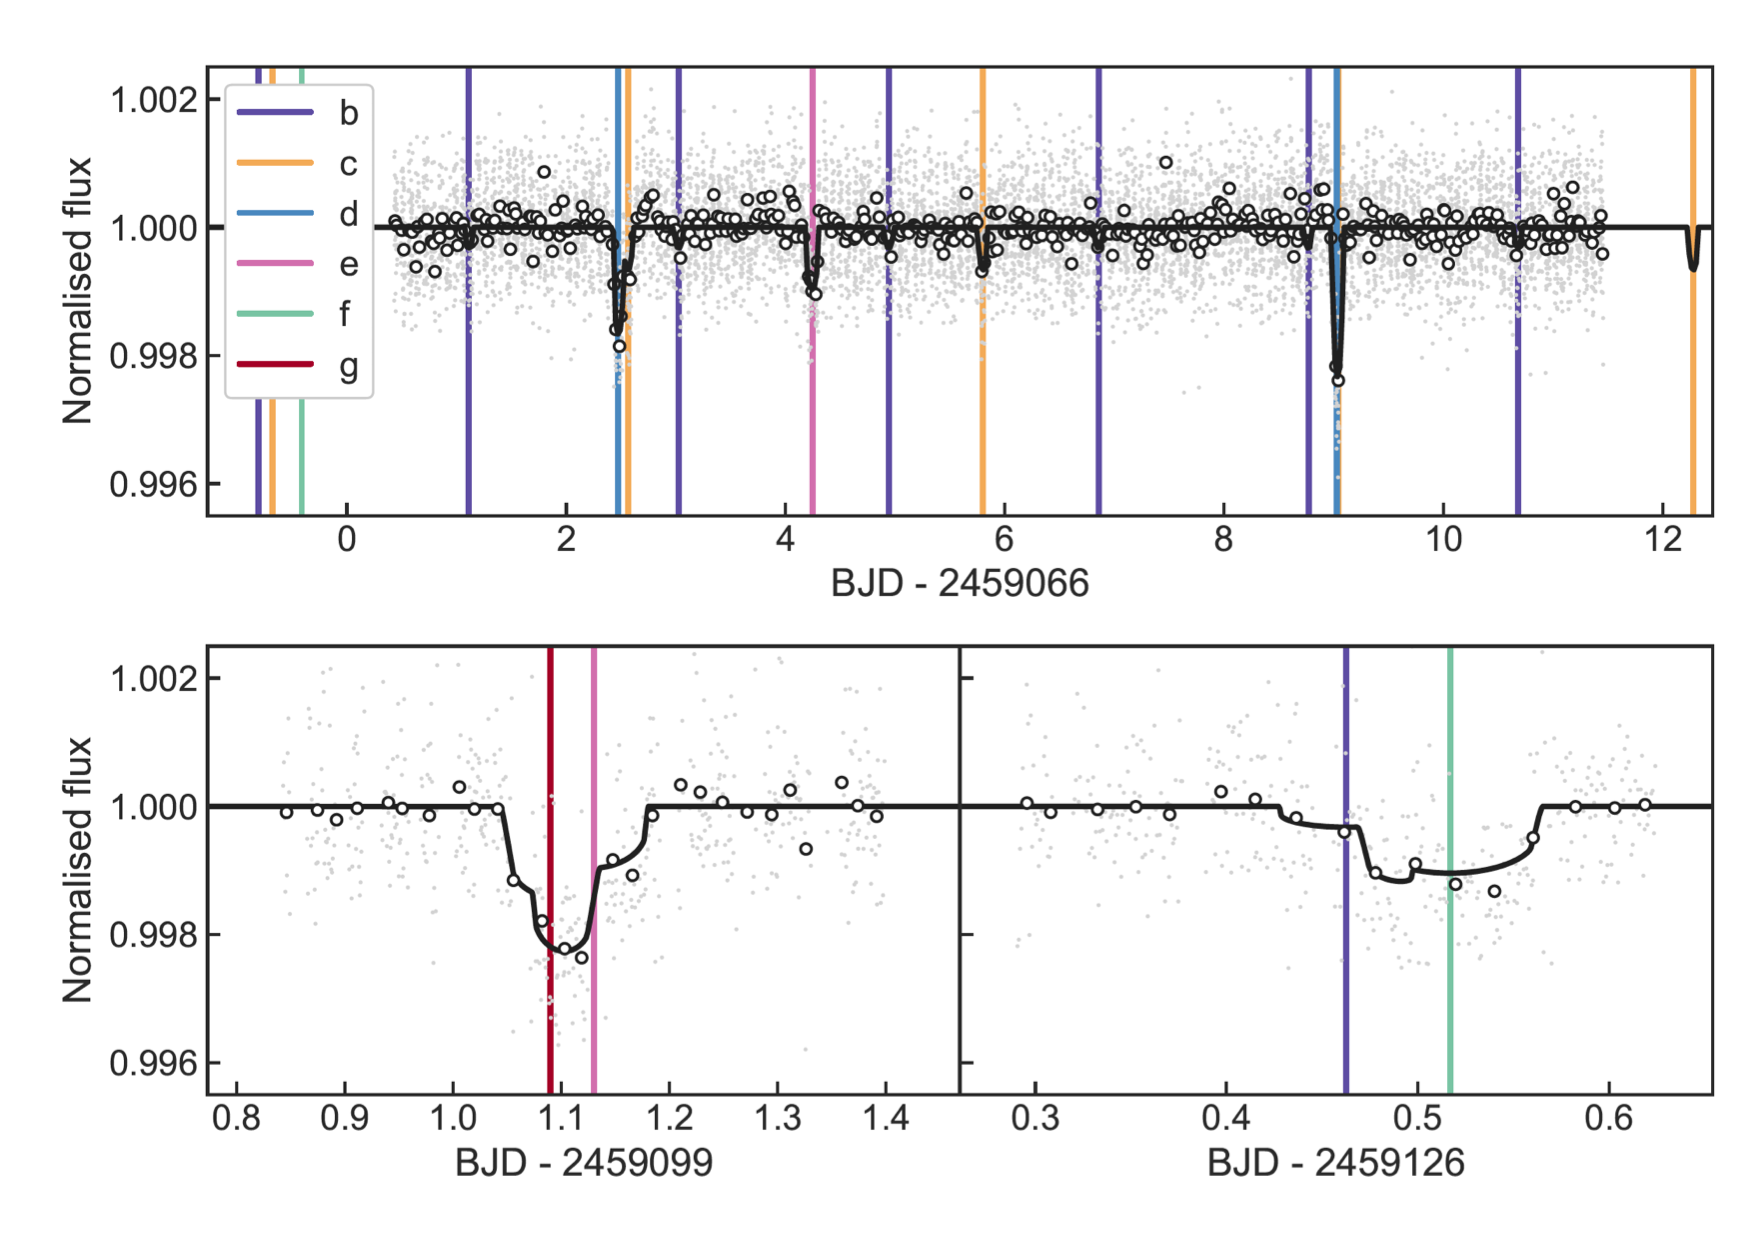 The top panel shows how the brightness of the star TOI-178 changes over nearly 2 weeks where vertical coloured lines indicate which planet [b-g] causes the dip in the stars apparent brightness as it comes between us and the star. The lower panel shows a close up of two dips where the signature of more than one planet is revealed. [Credit Leleu et al. 2021, Astronomy & Astrophysics, https://www.aanda.org/component/article?access=doi&doi=10.1051/0004-6361/202039767 and https://arxiv.org/pdf/2101.09260.pdf]